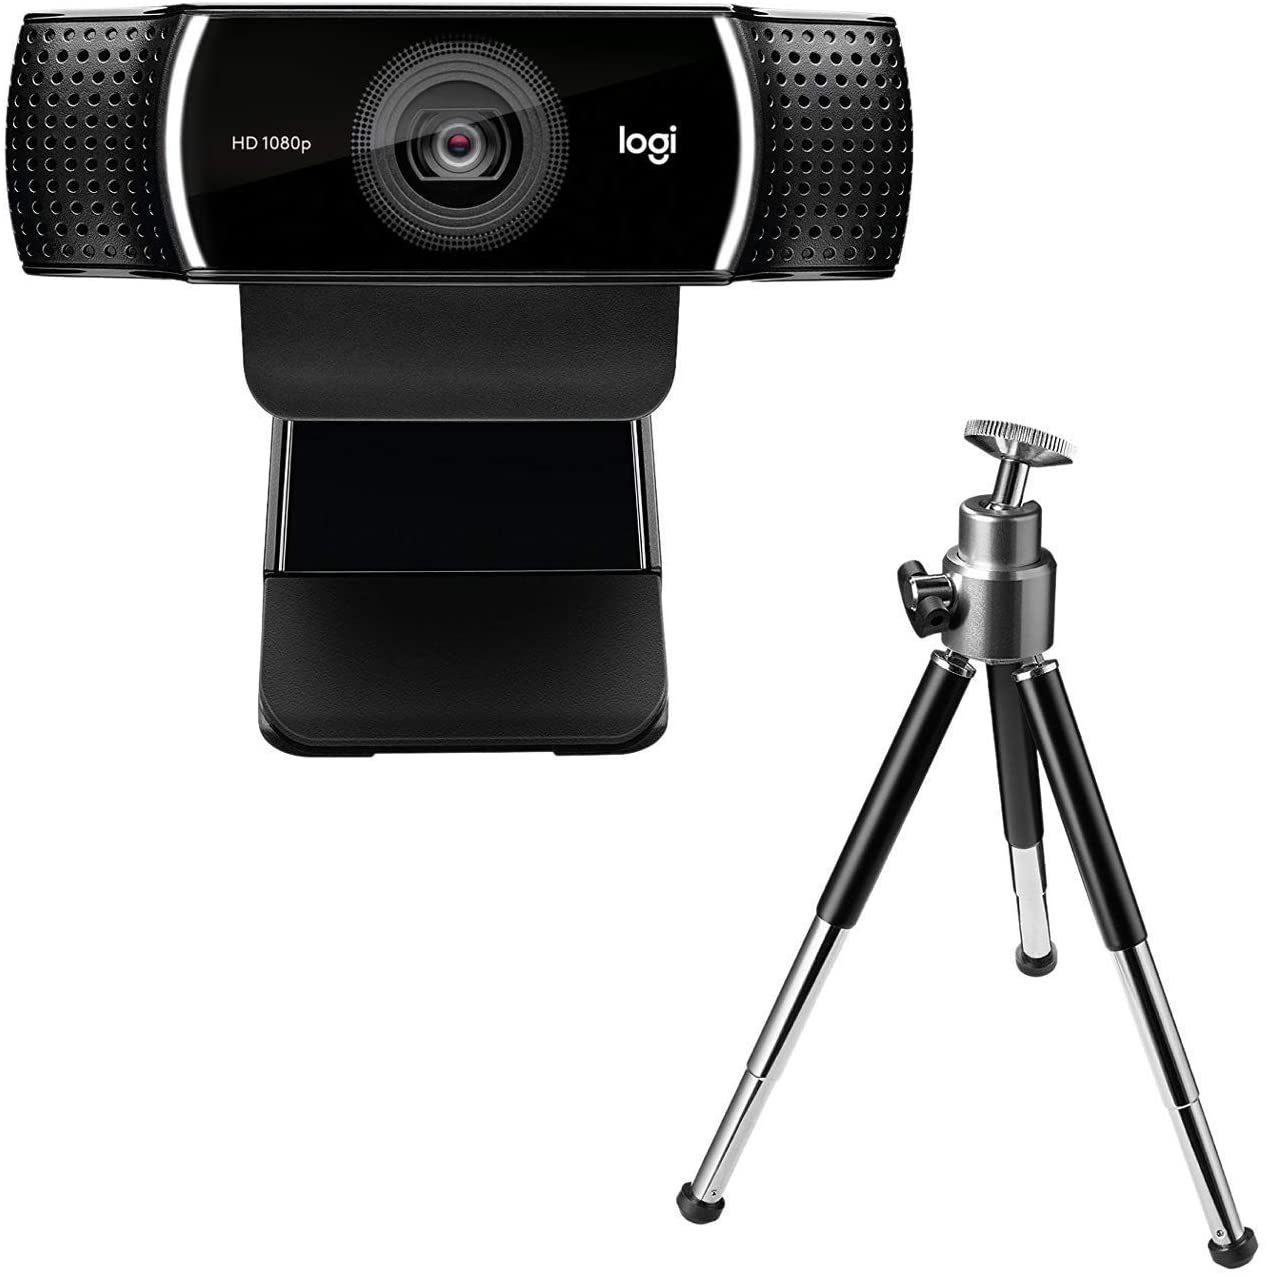 Logitech C922 Pro - 10 Best Camcorder for Sports 2021 You Should Know